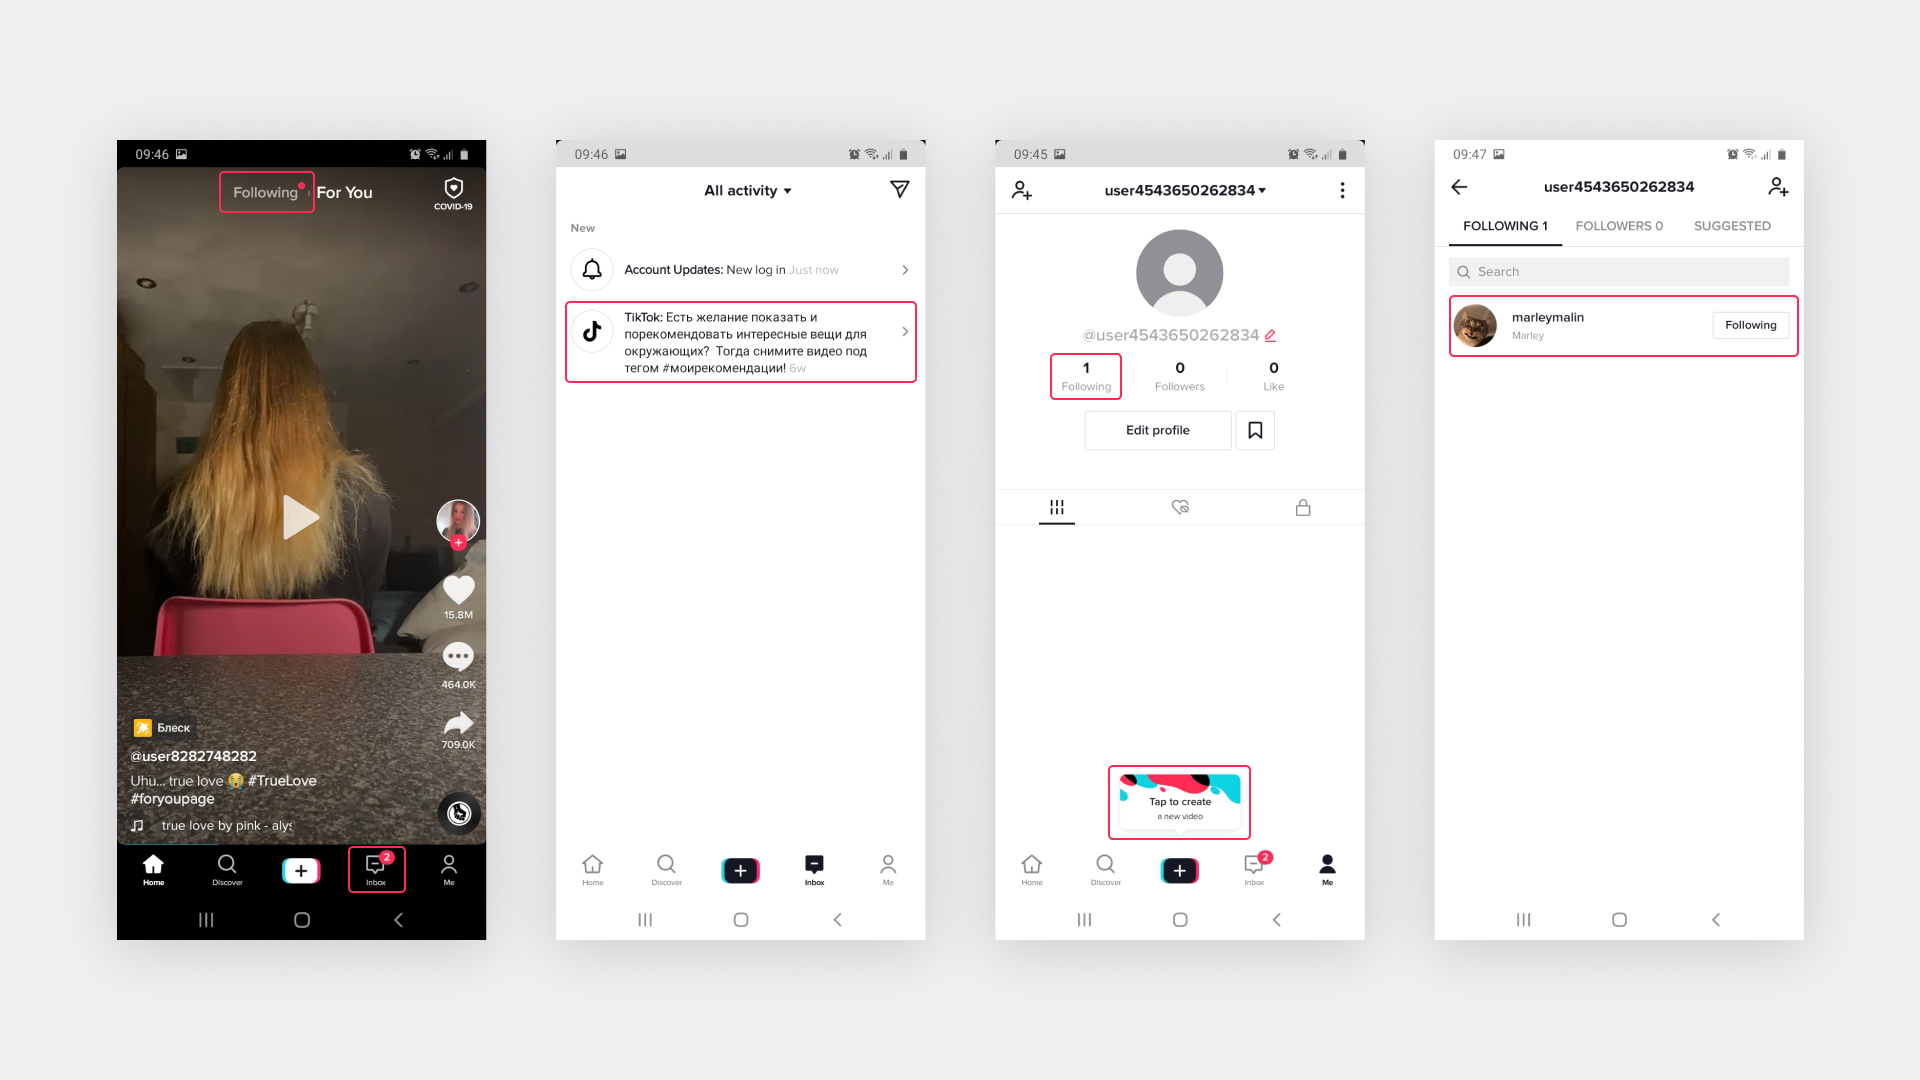 How TikTok's design engages users